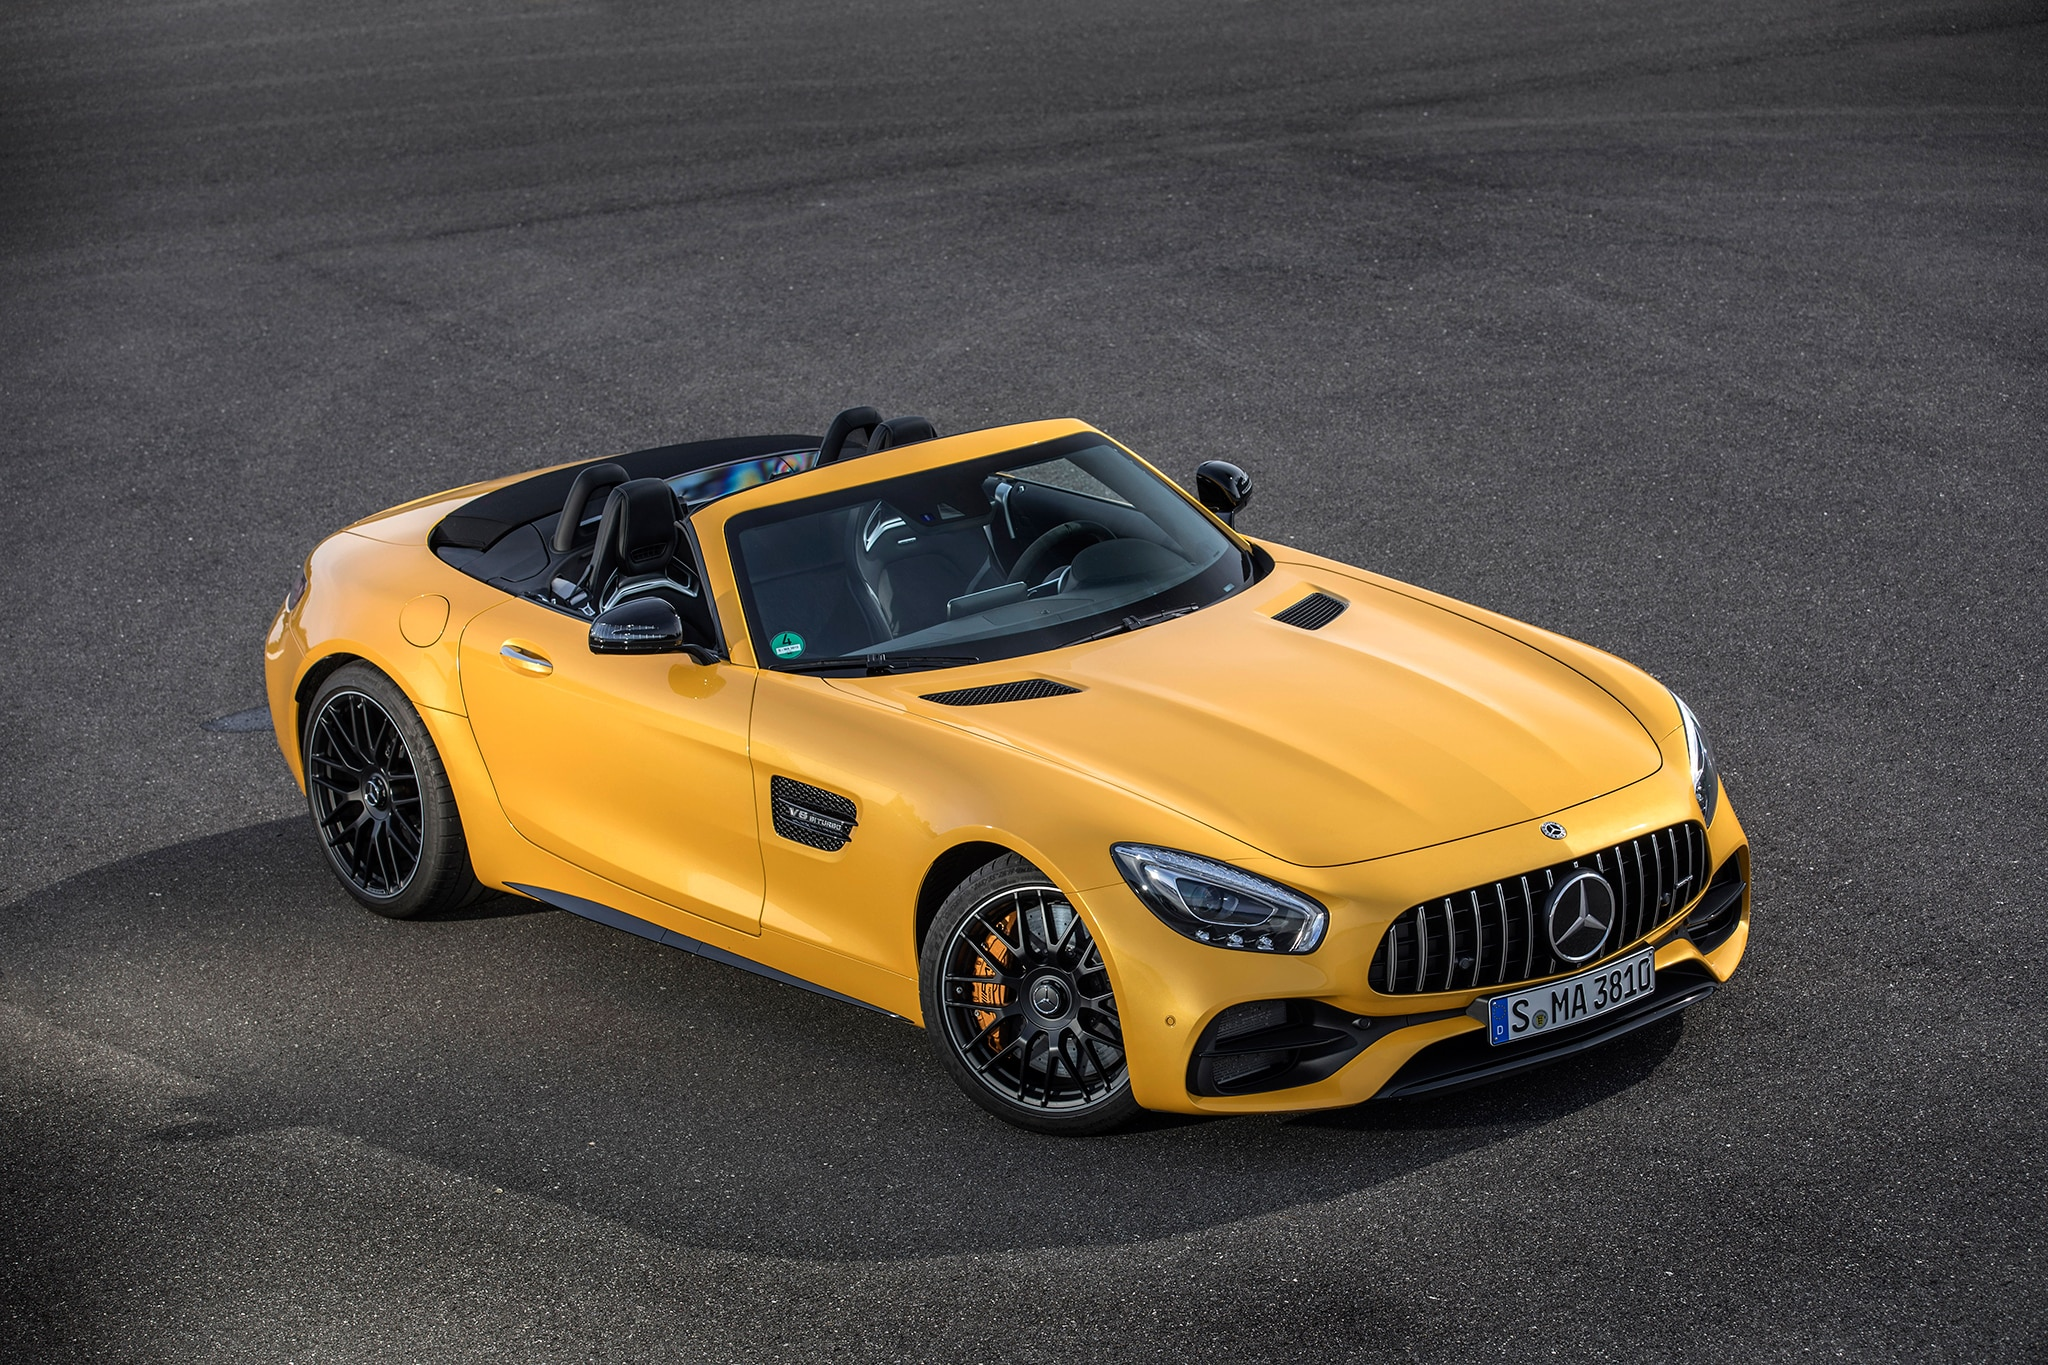 All in the 2018 Mercedes AMG GT Family